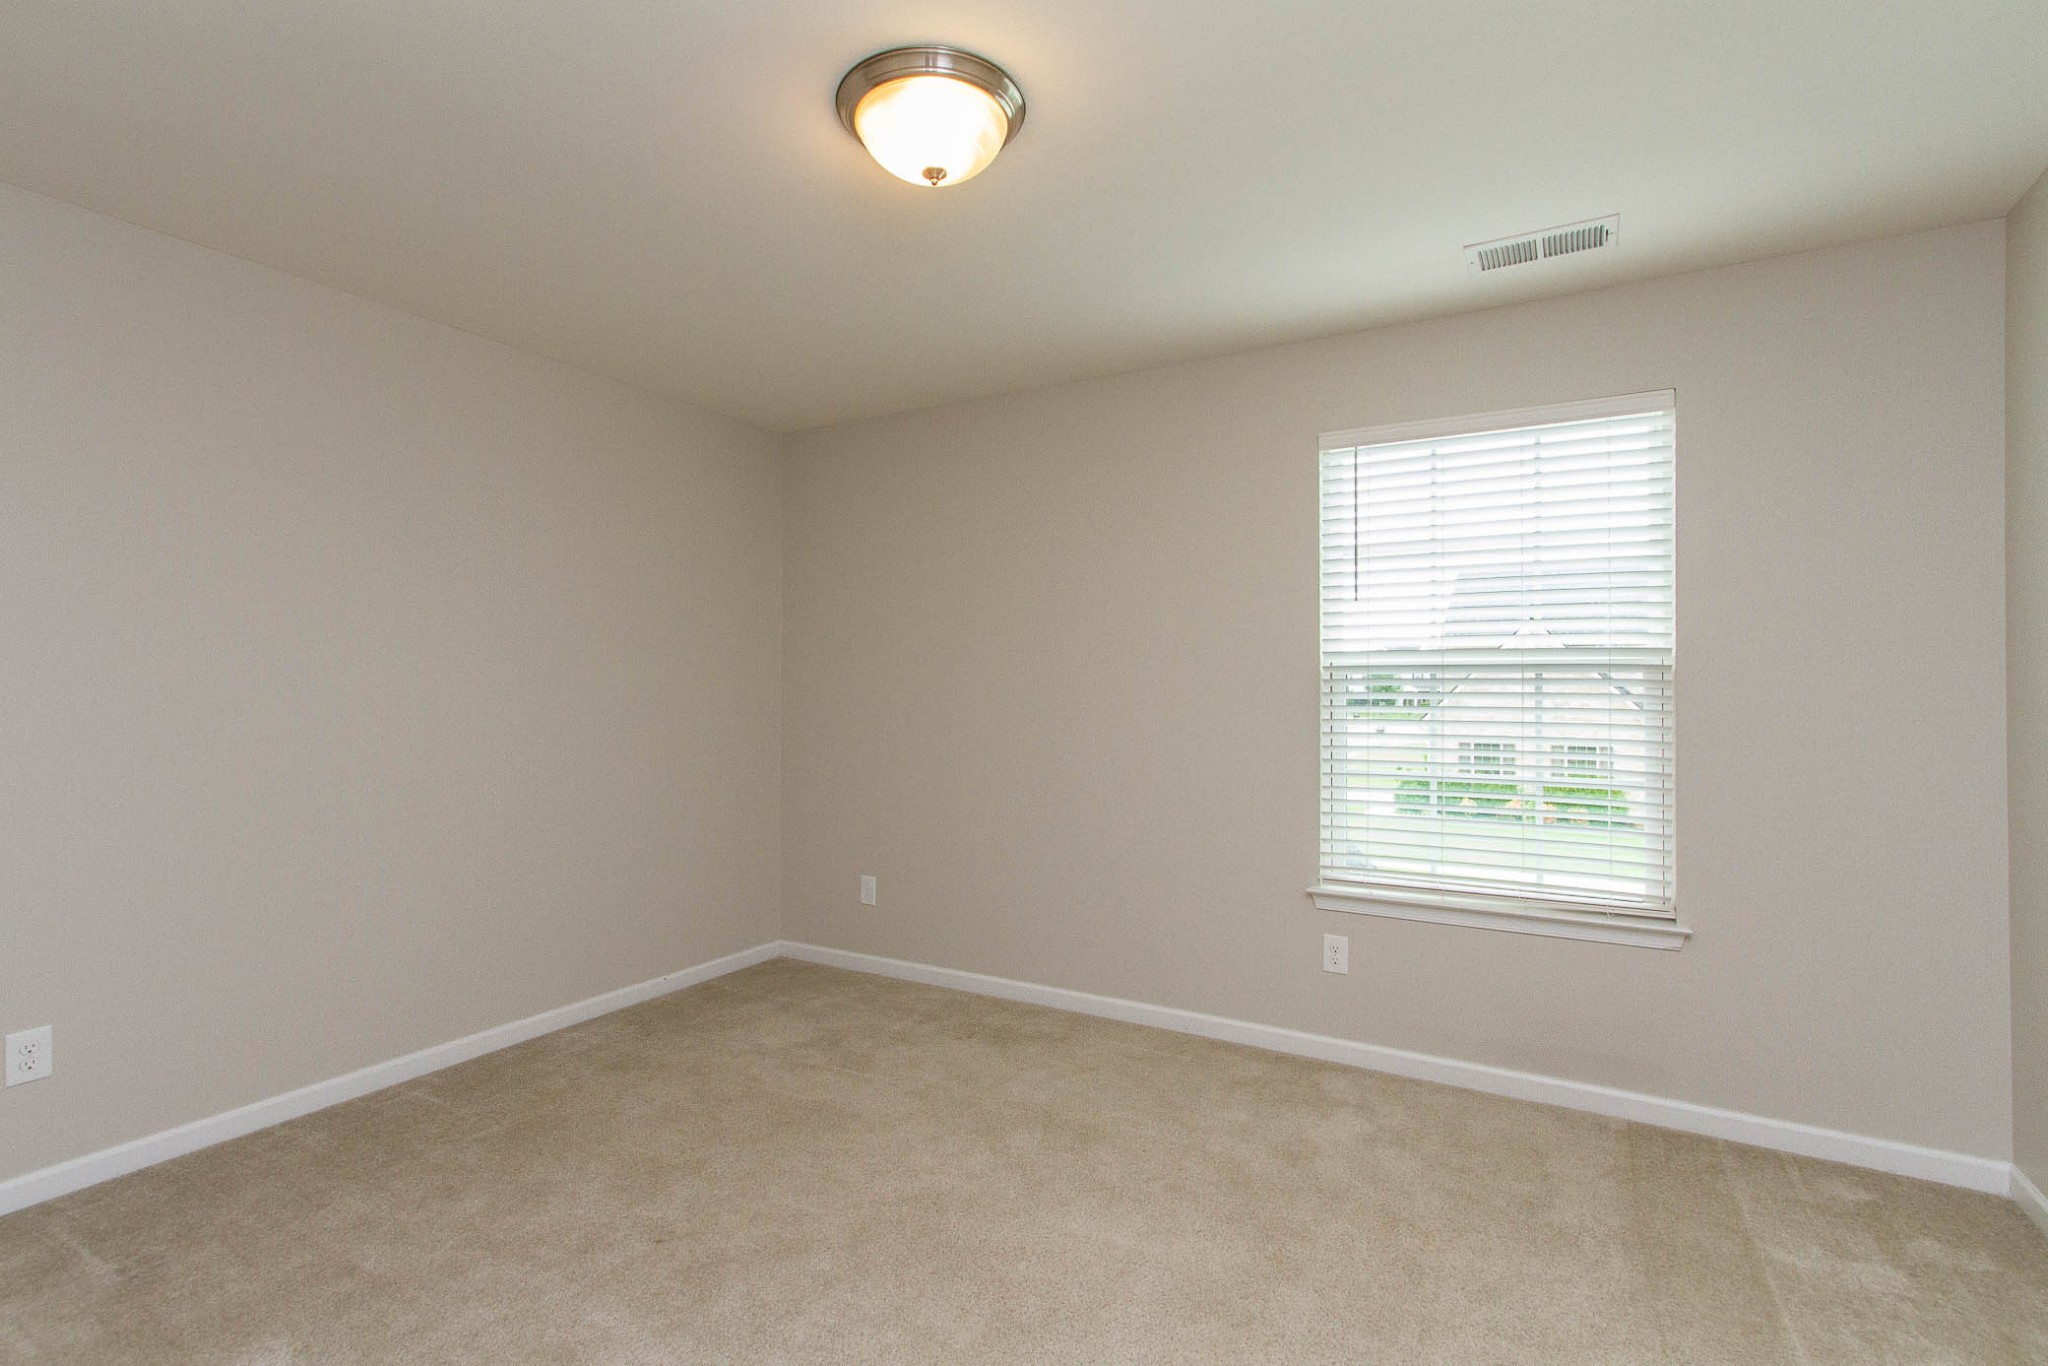 1031 New Eanes Dr Property Photo 32